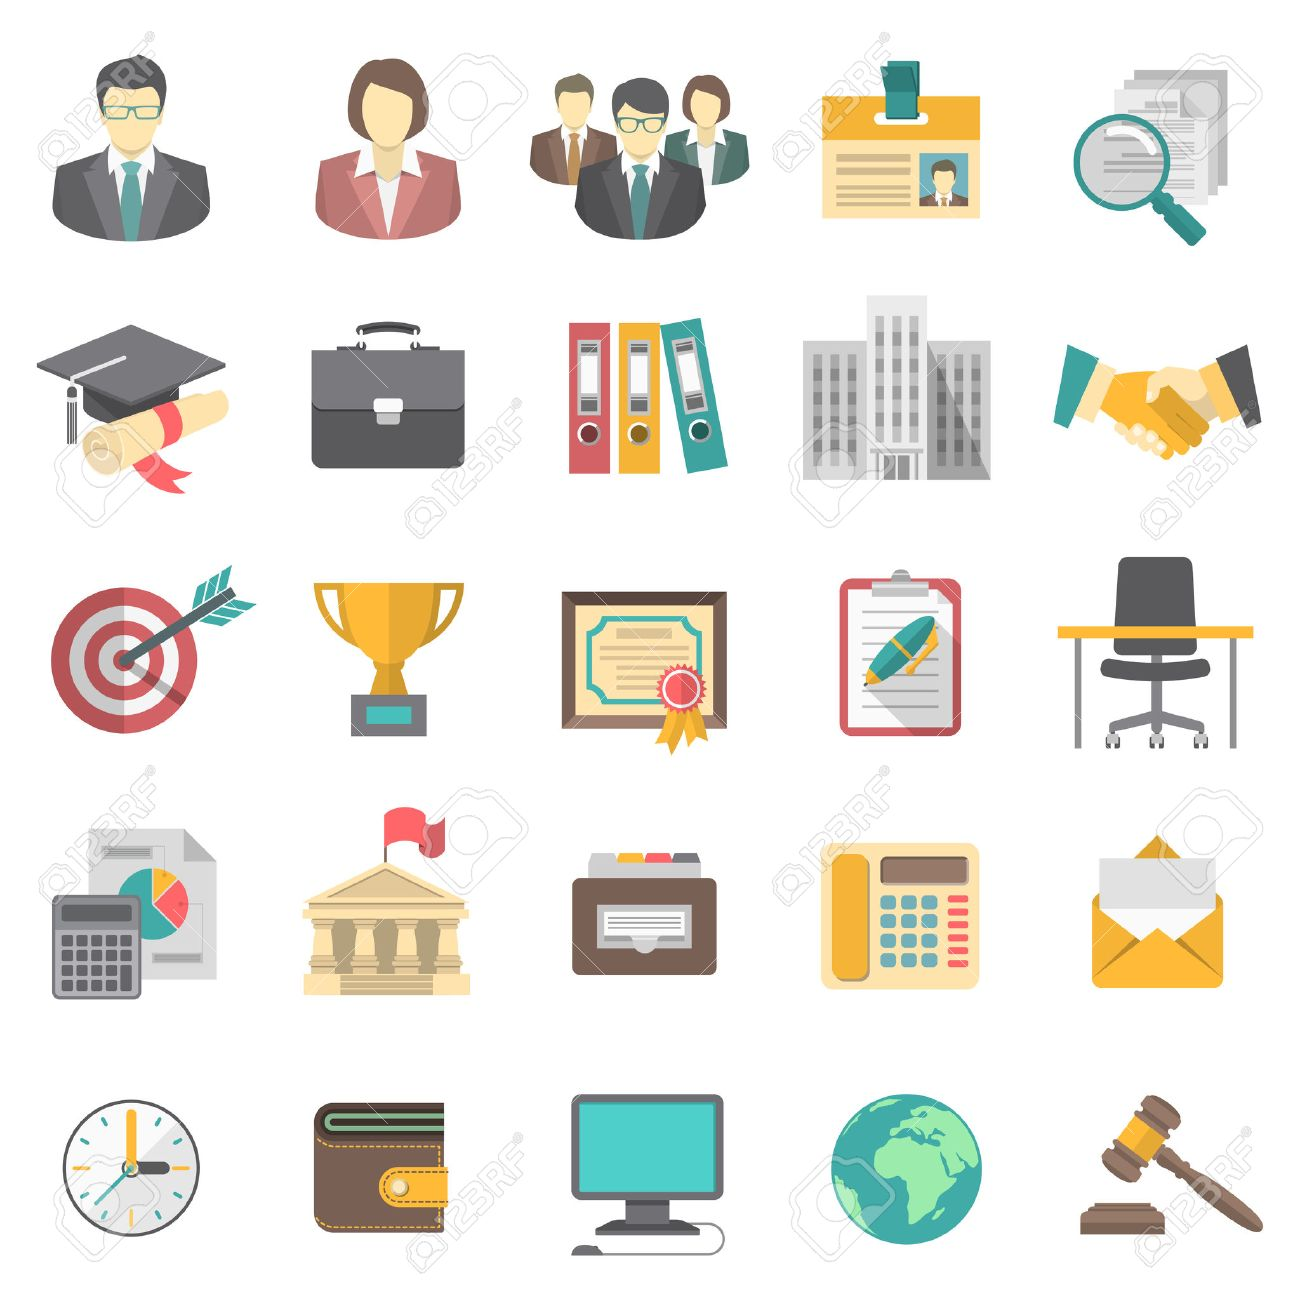 modern flat icons for business resume and the searching of human